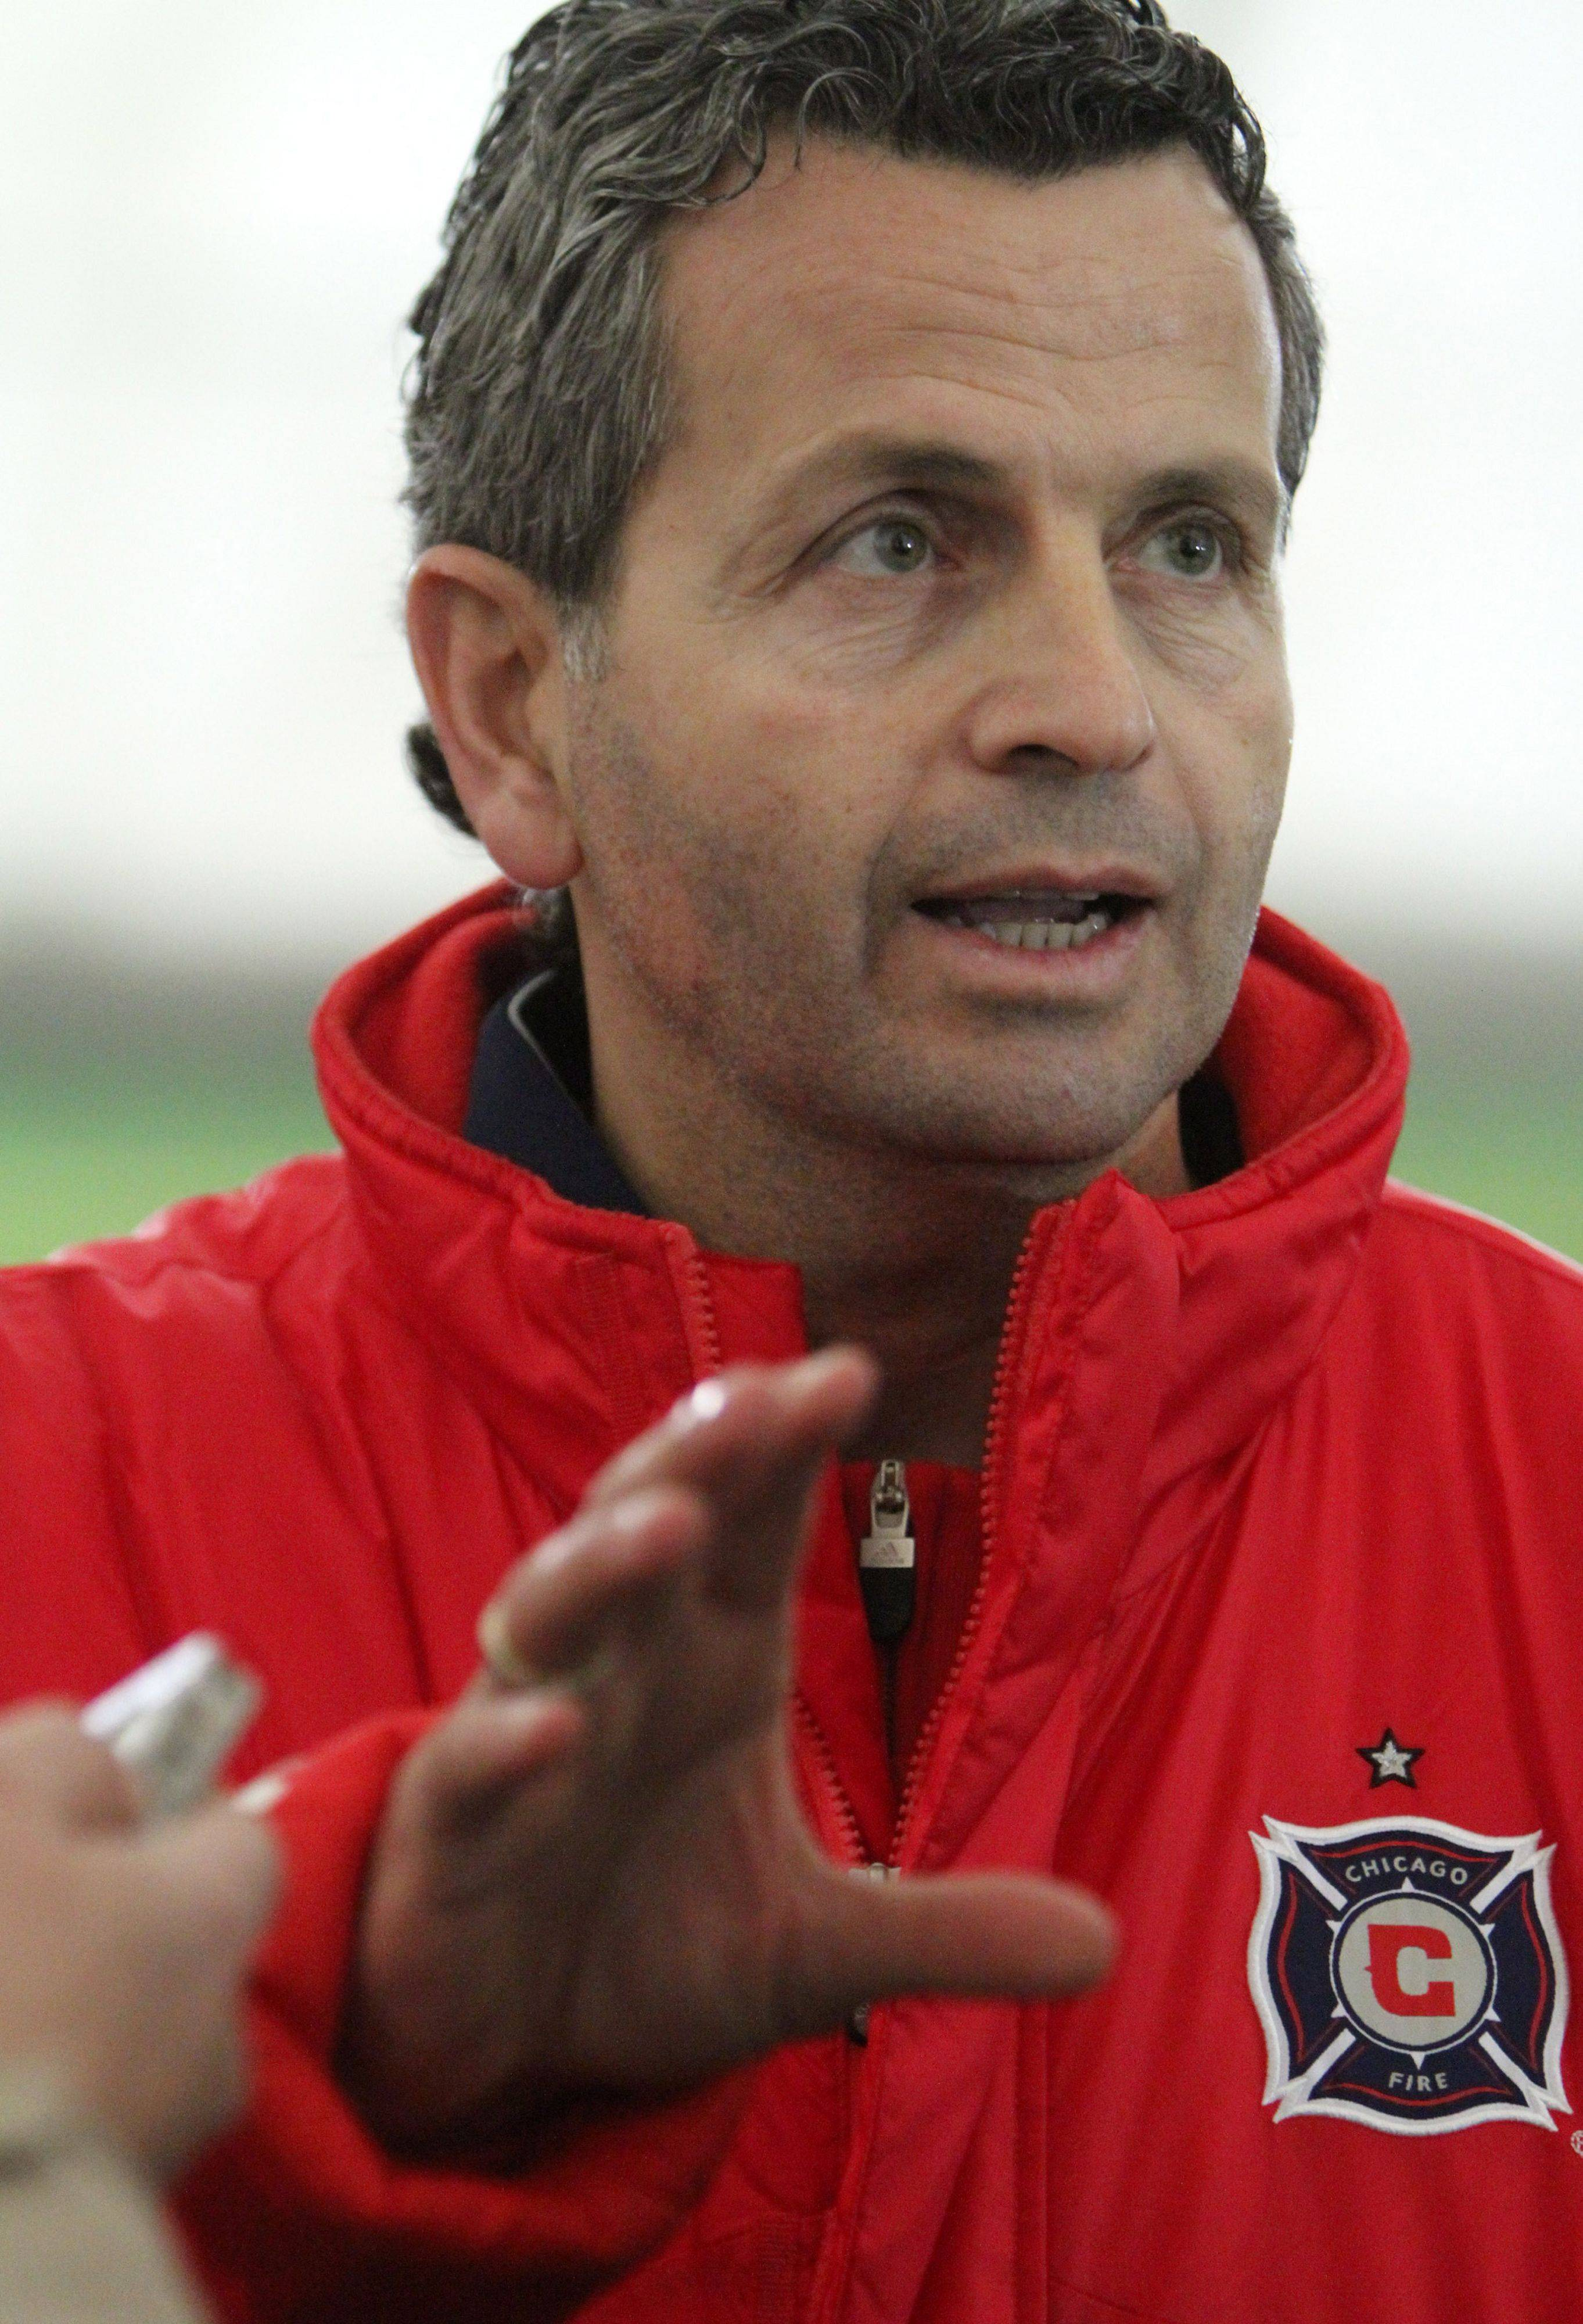 Chicago Fire Technical Director Frank Klopas likes the attitude and team chemistry his players are developing at their Florida training camp.